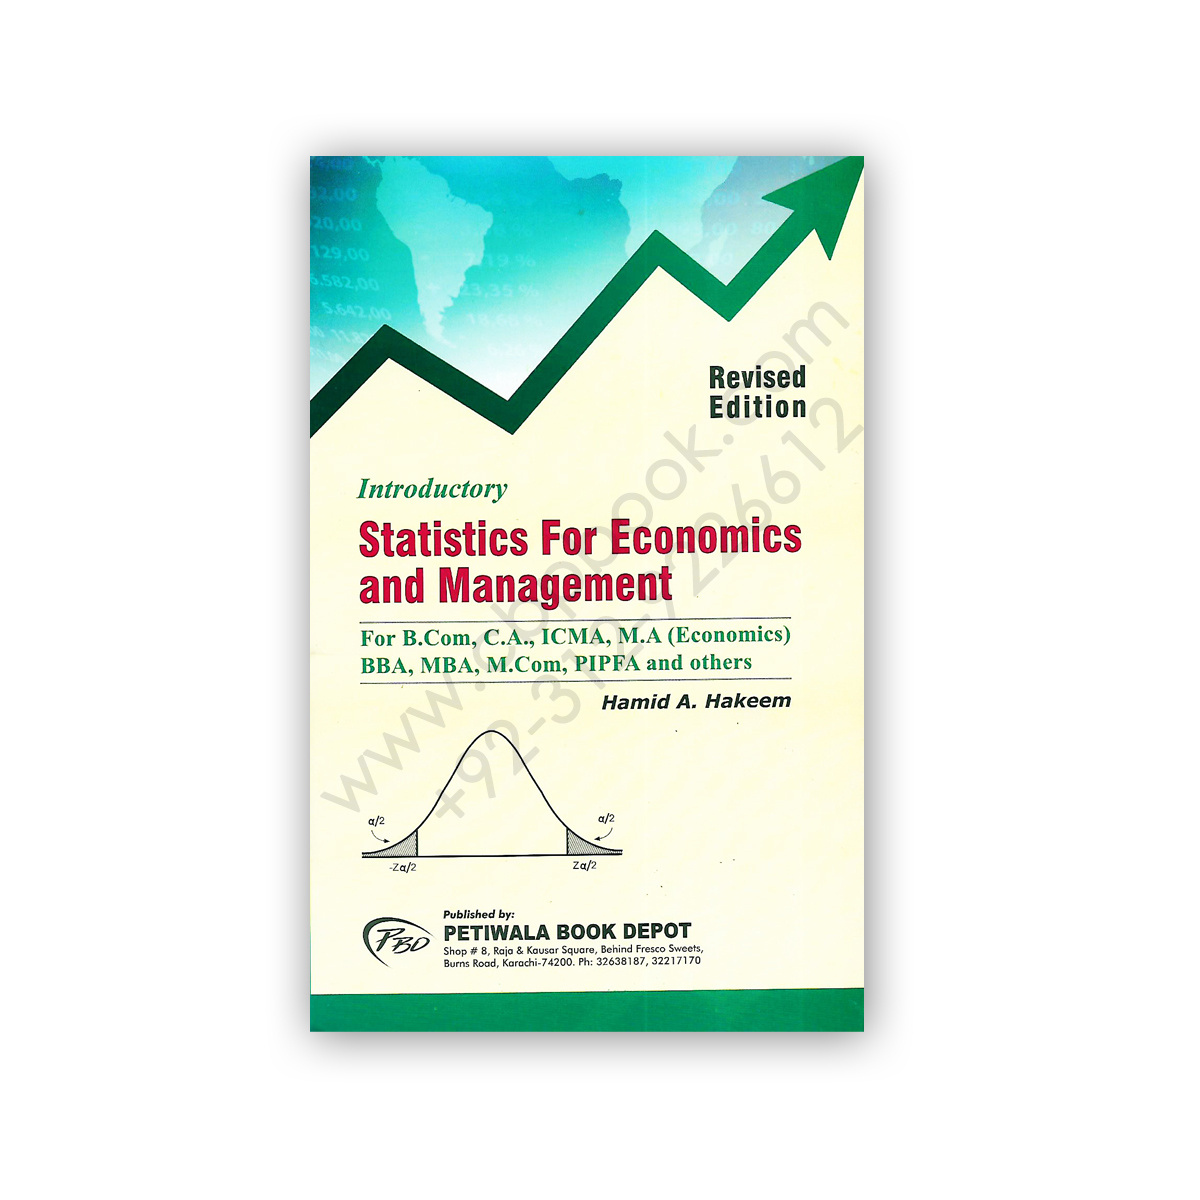 introductory statistocs for economics & management hamid a hakeem